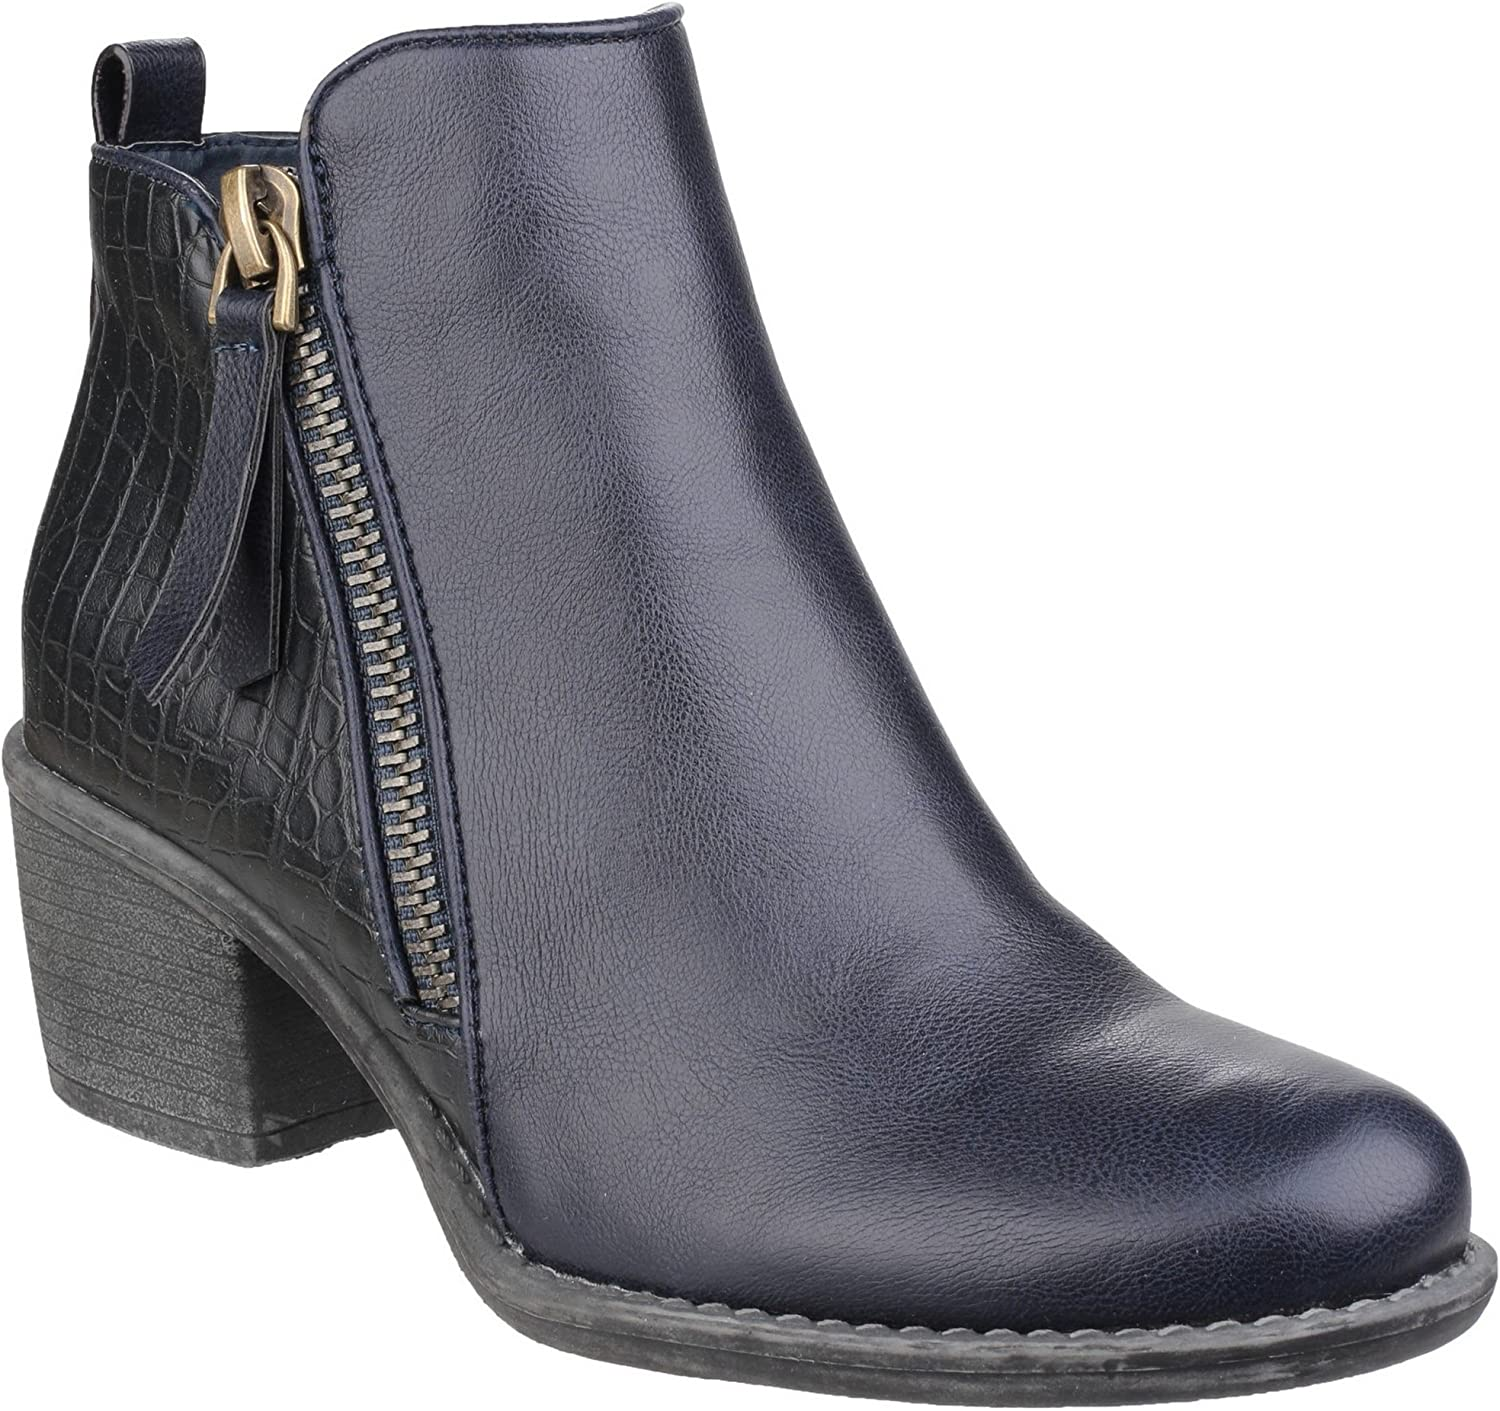 Divaz Womens Ladies Dench Zip Up Reptile Skin Ankle Boots